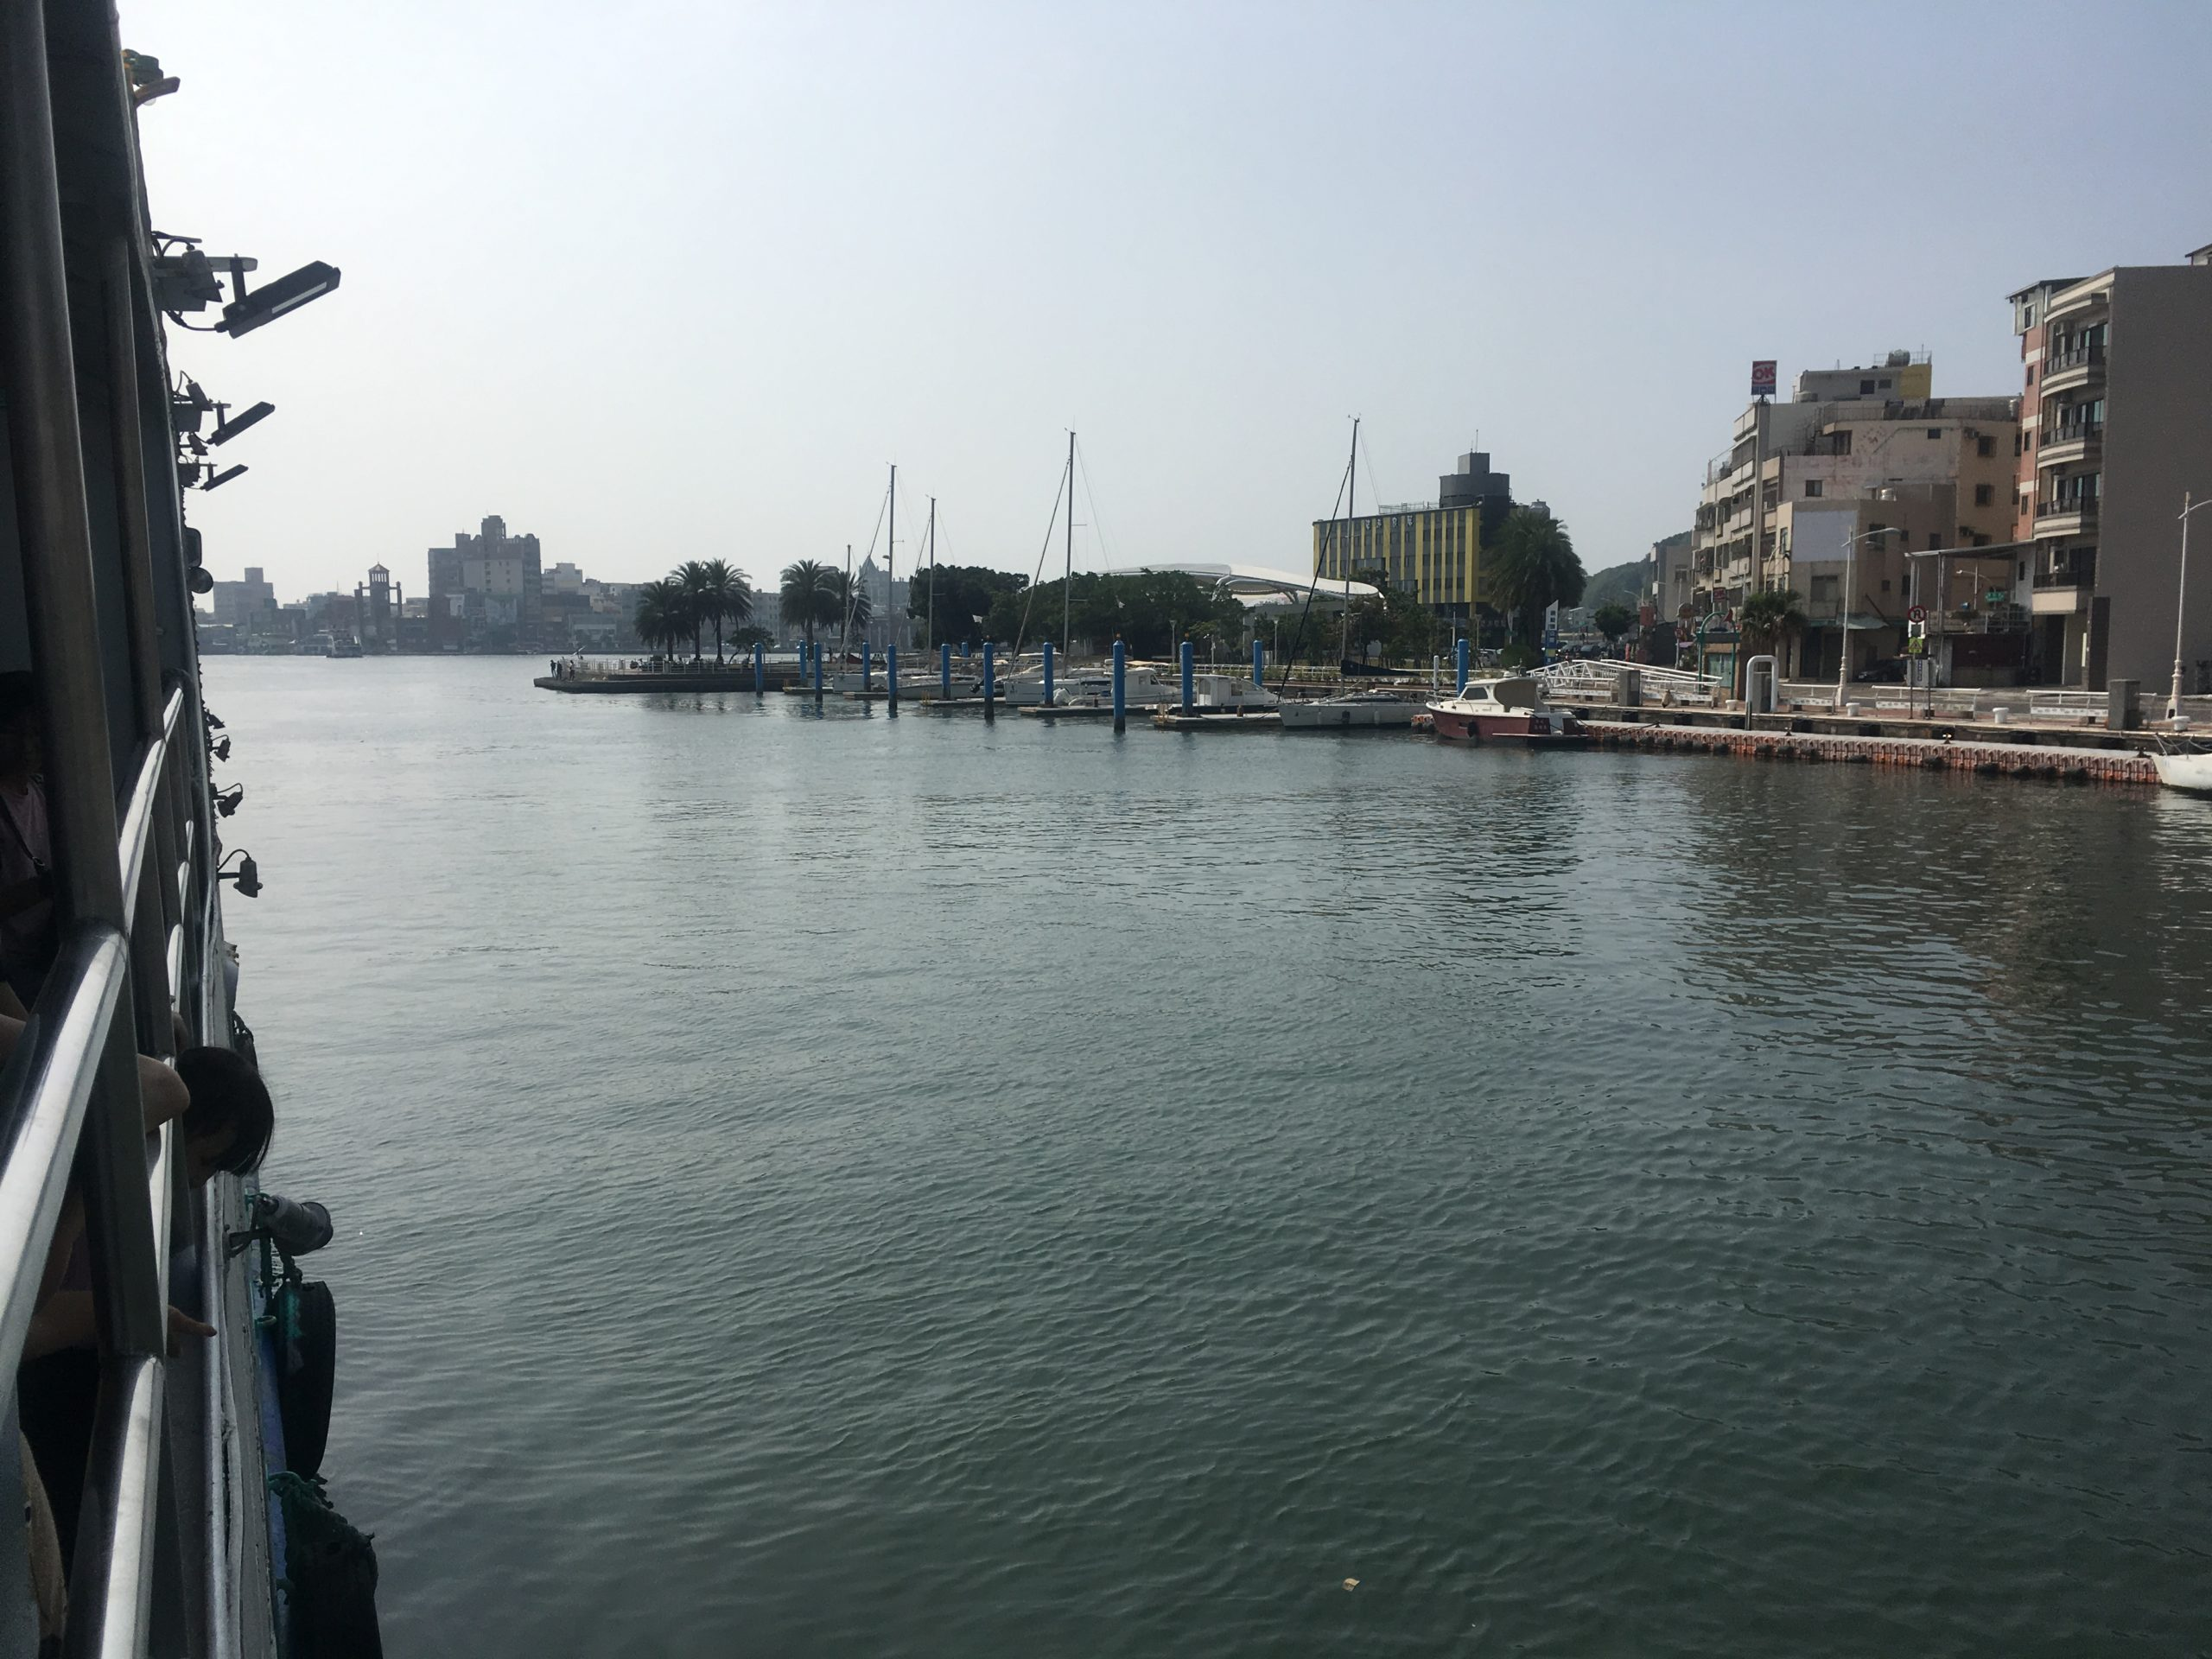 Looking towards Cijin from Kaohsiung Ferry wharf